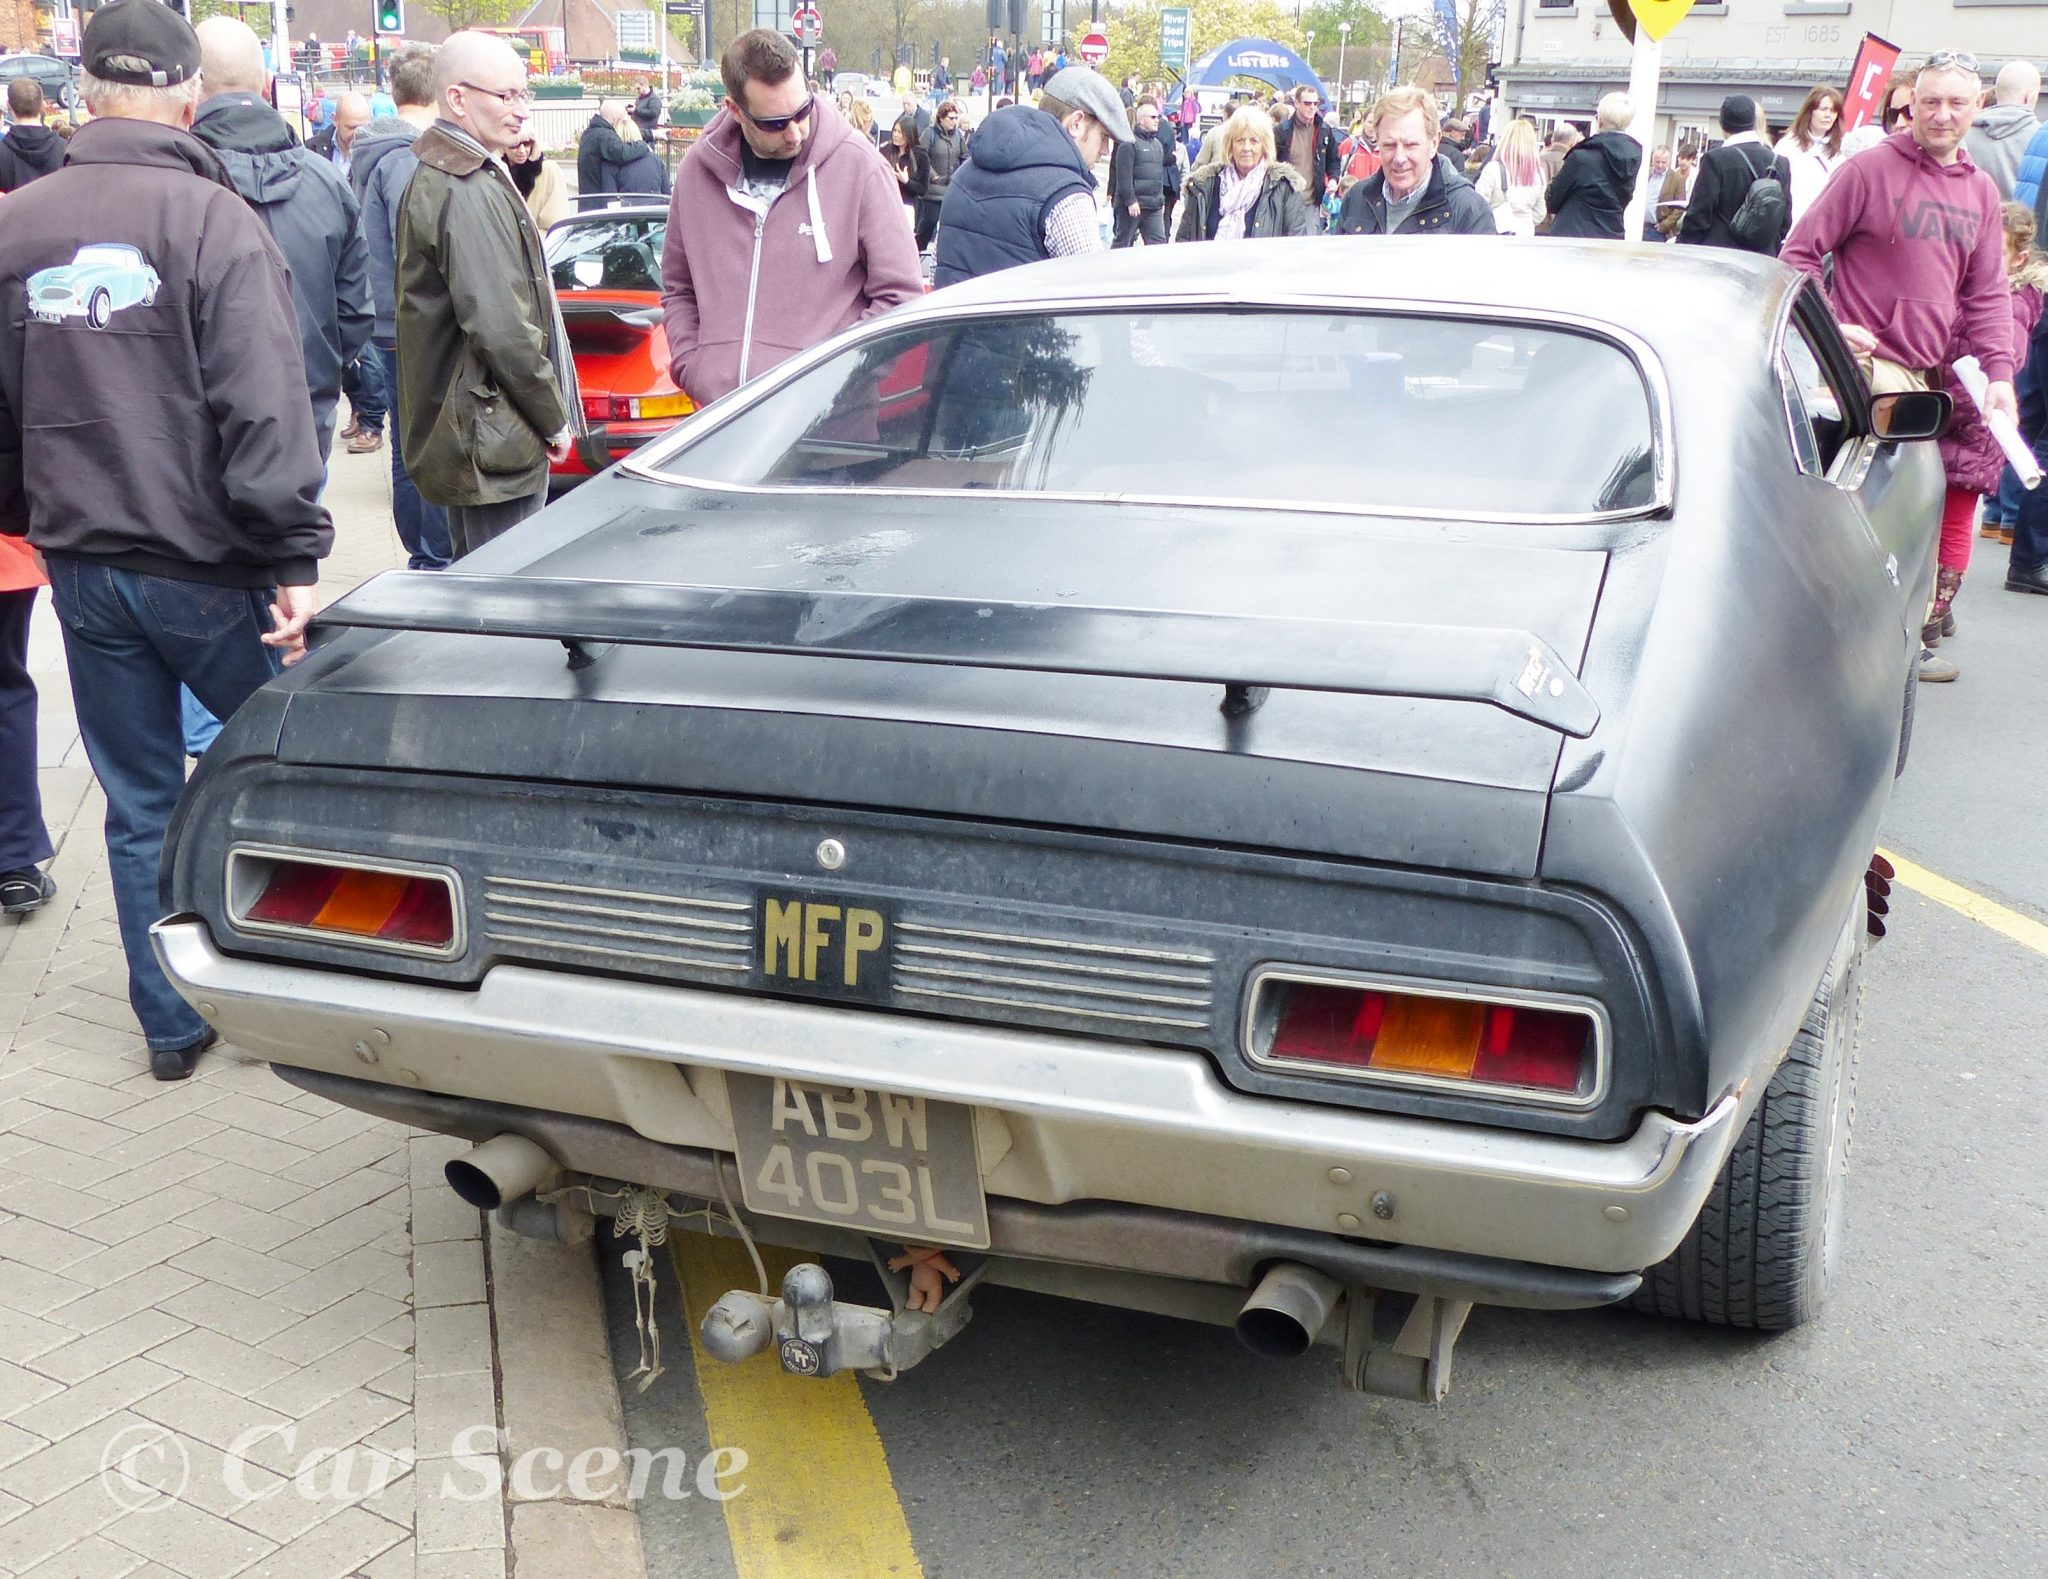 1973 Ford Falcon XA rear view